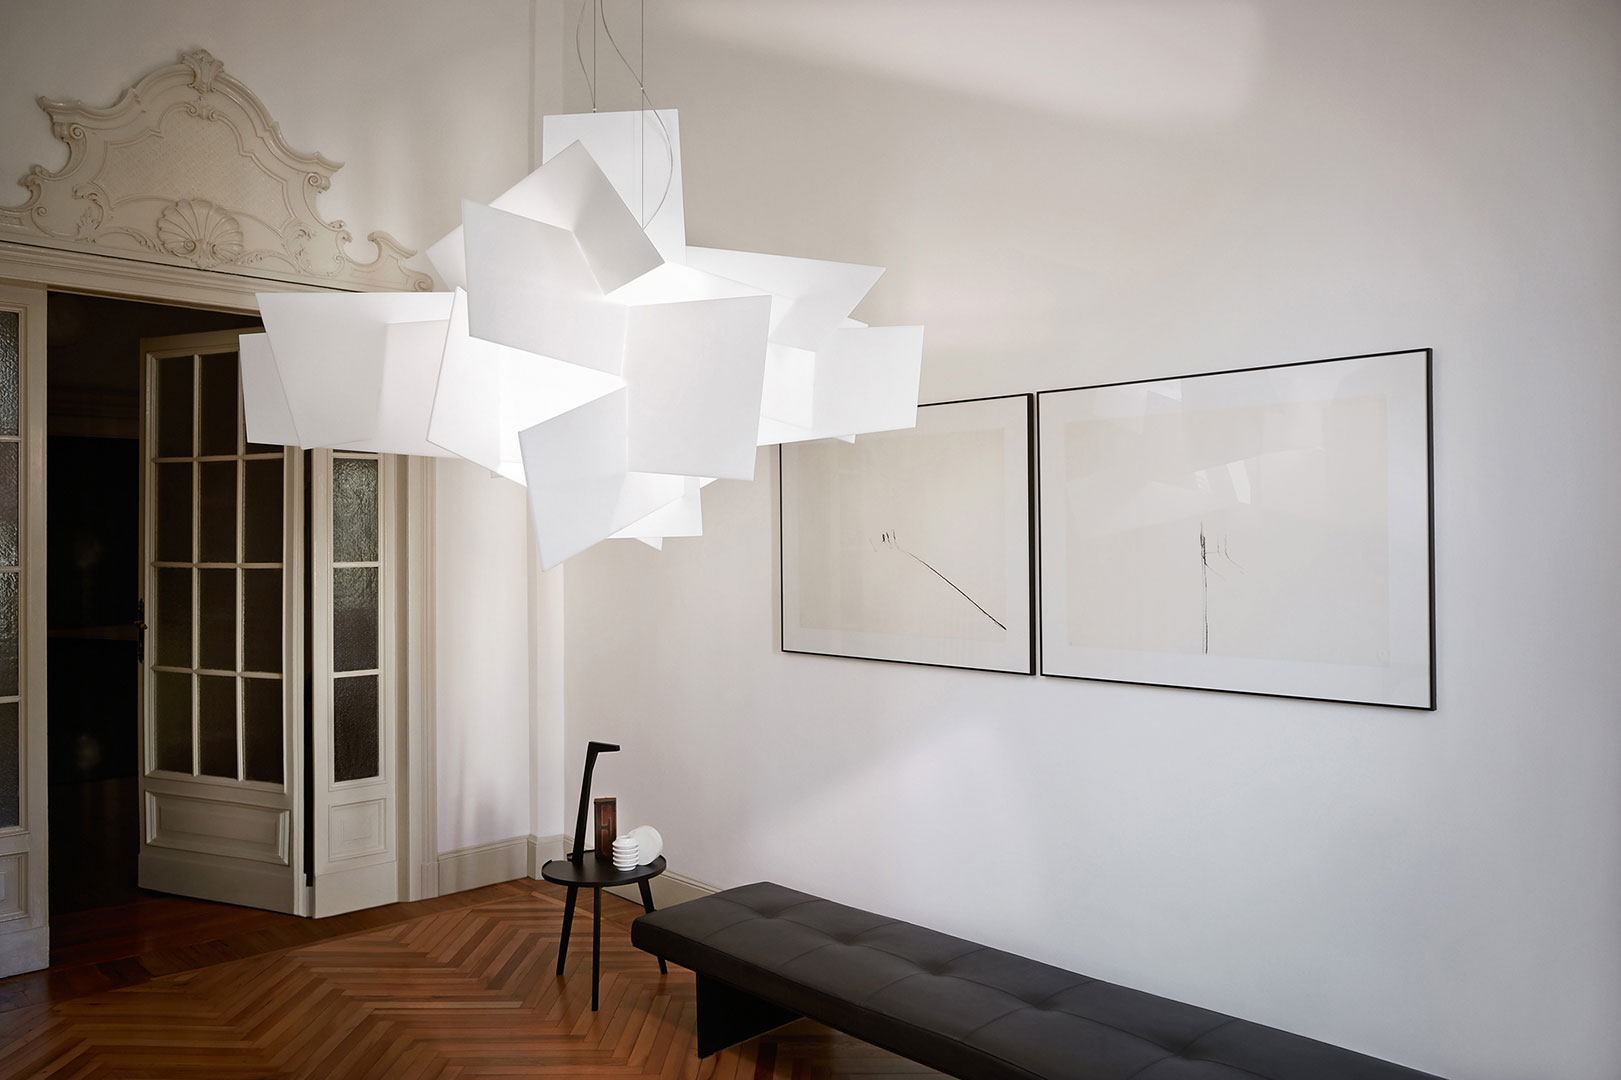 https://www.foscarini.com/wp-content/uploads/2017/10/PR_007_3.jpg